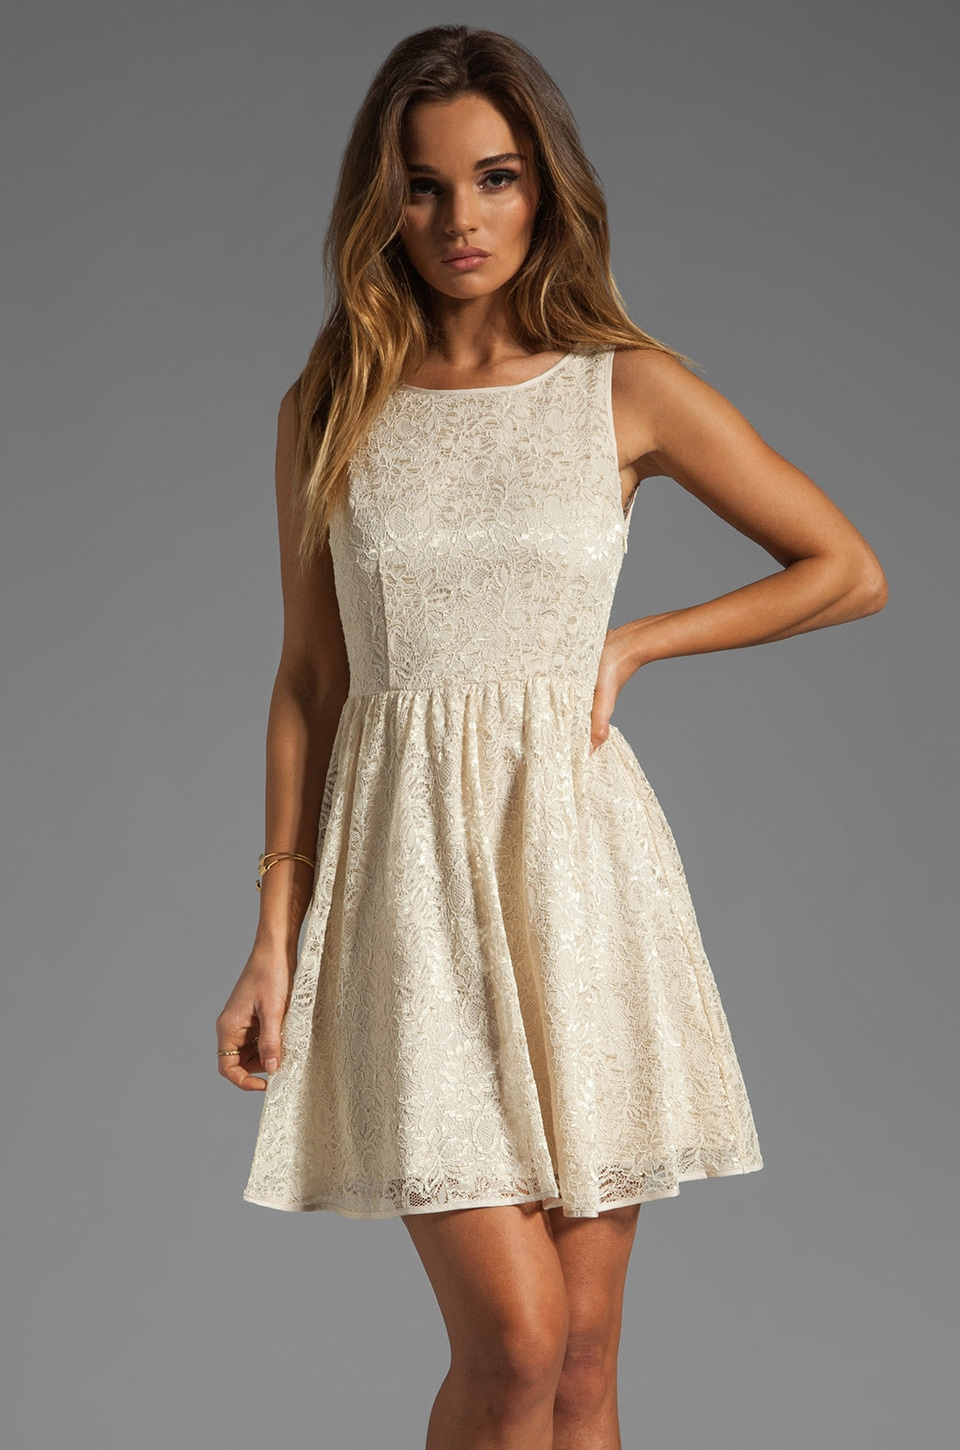 BB Dakota Azura Pleated Lace Dress in Whitecap Beige